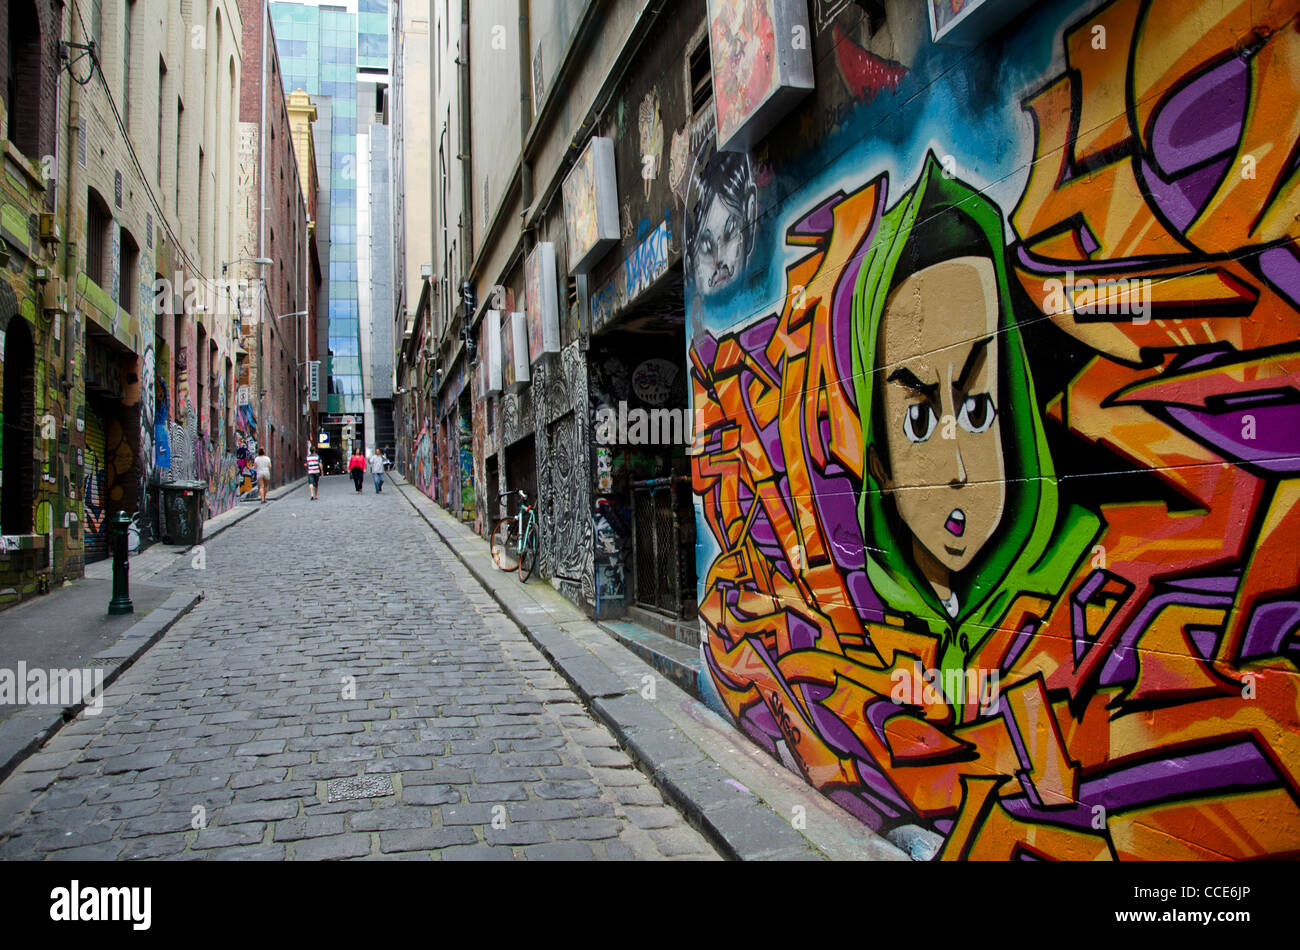 size positioning custom wallpaper caption graffiti art in melbourne city australia wall mural related terms street art paint painted melbourne melbourne